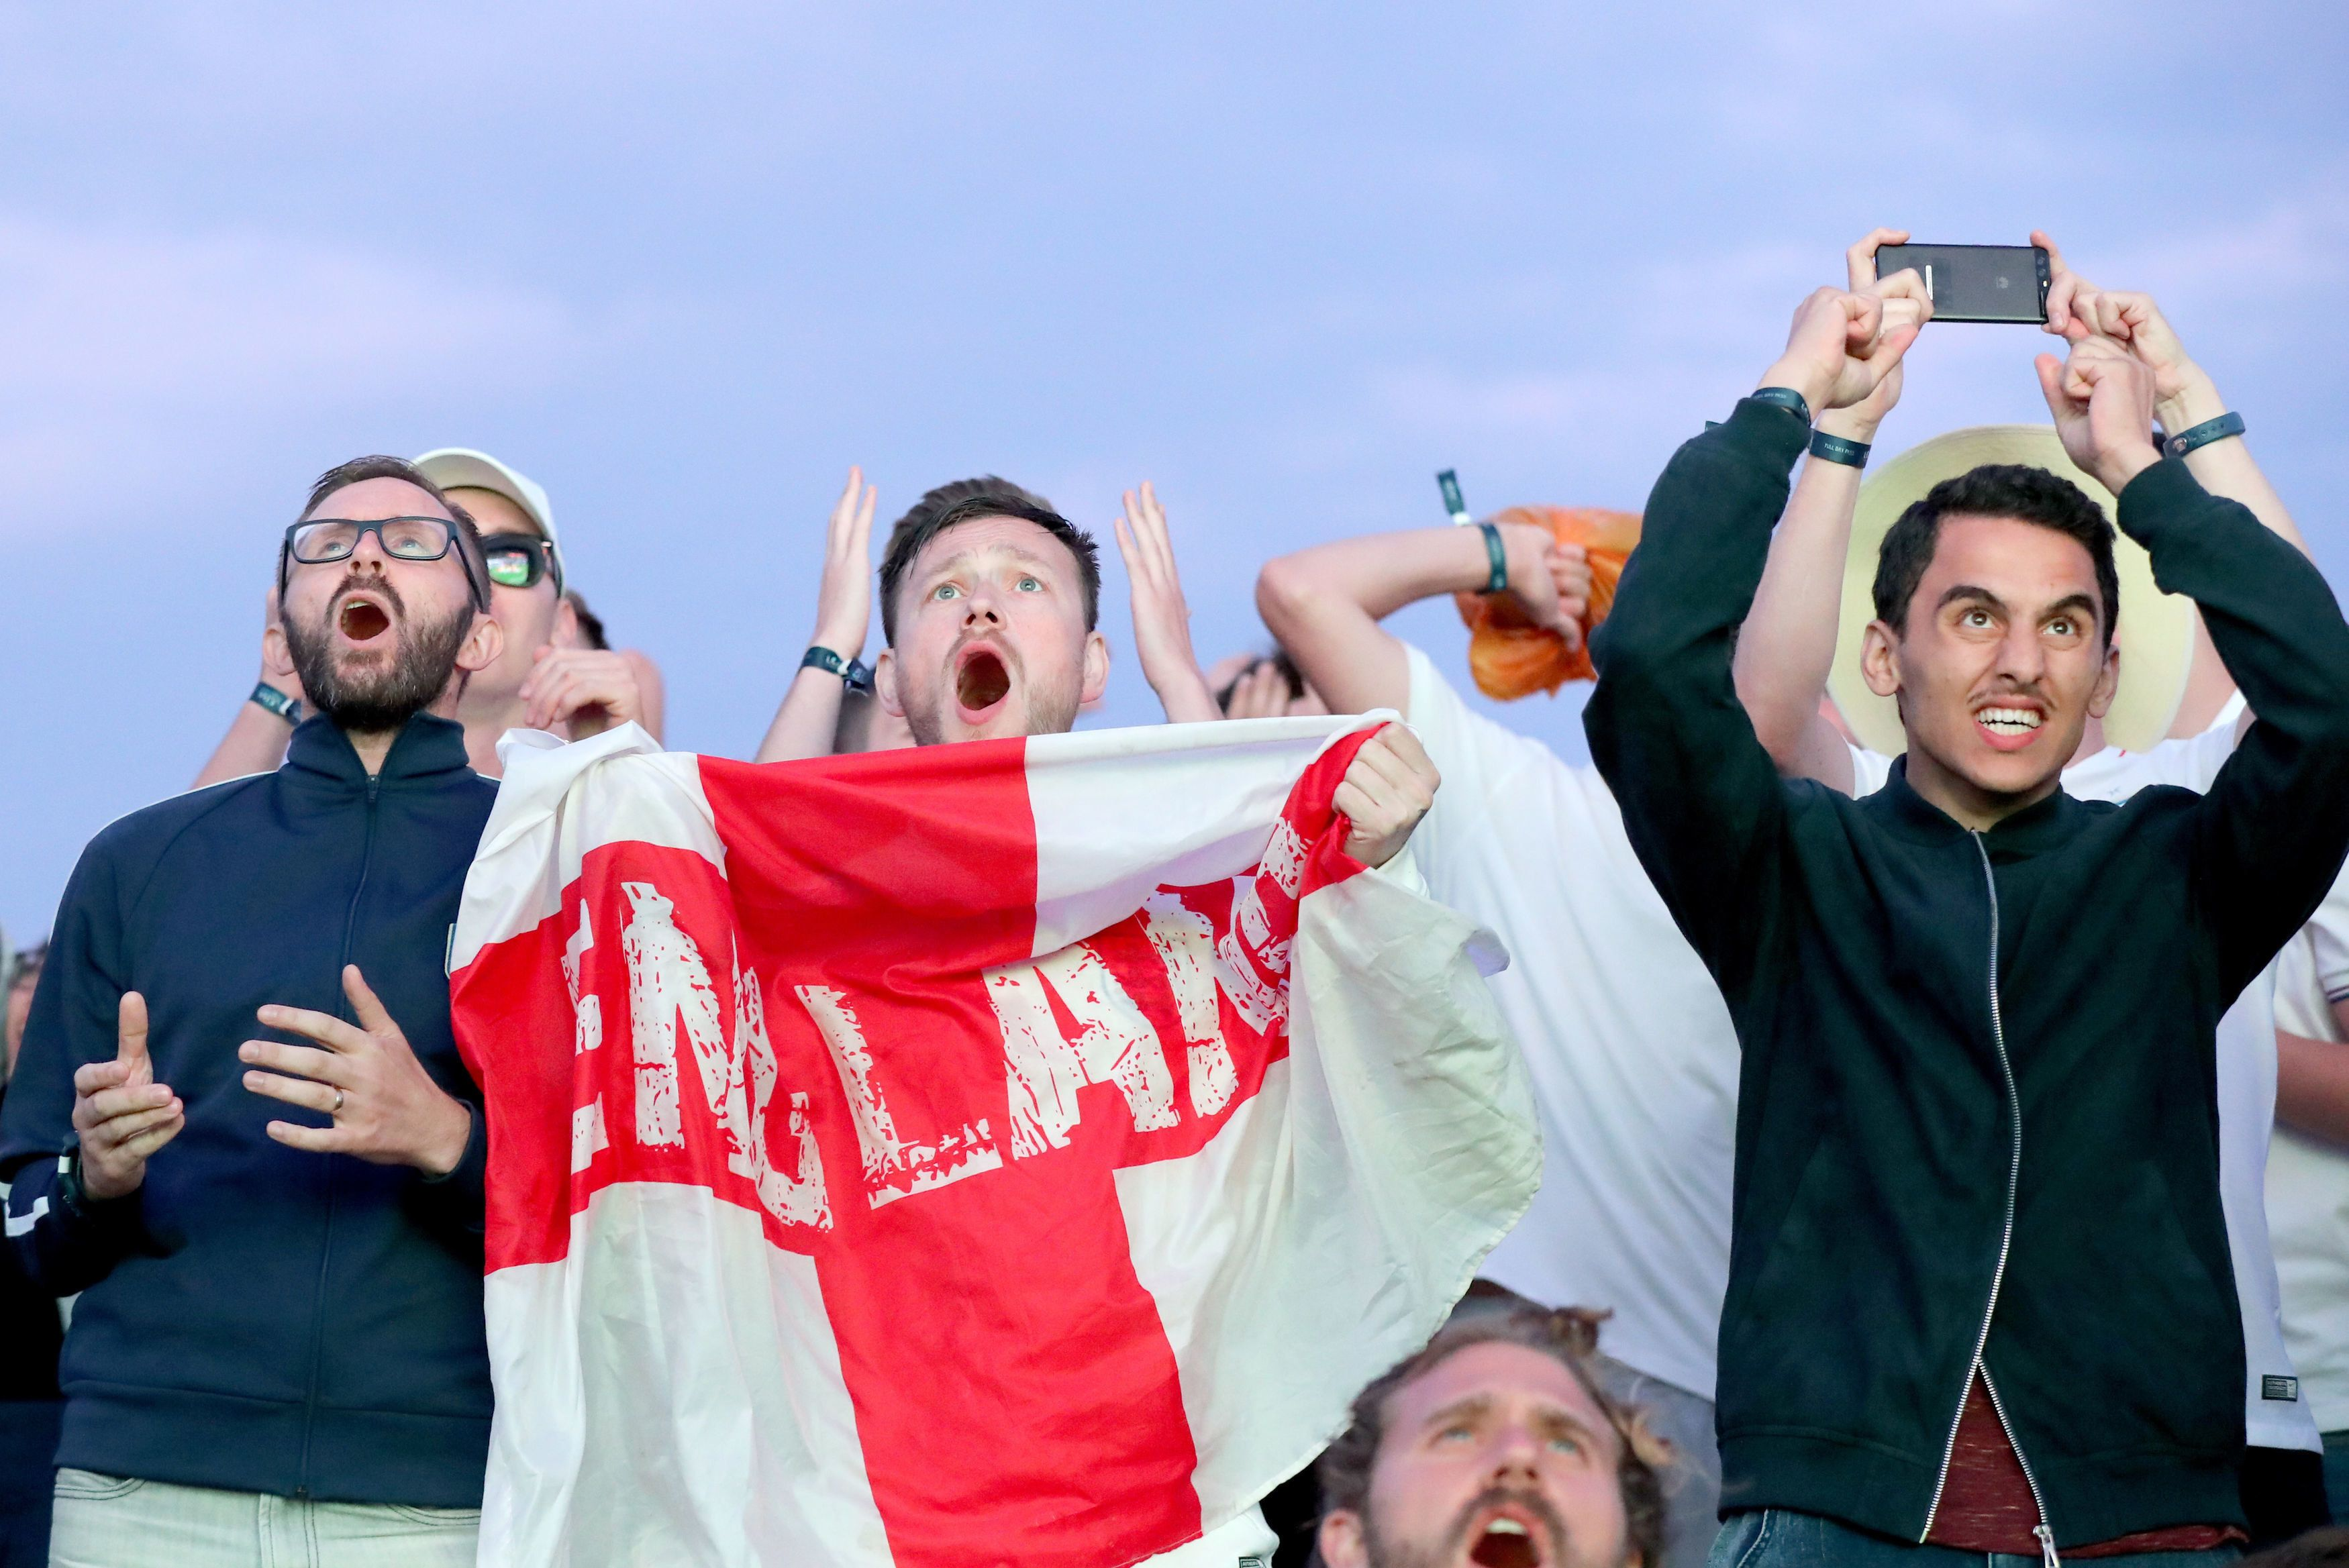 Why Watching Football Could Be Good For Your Mental